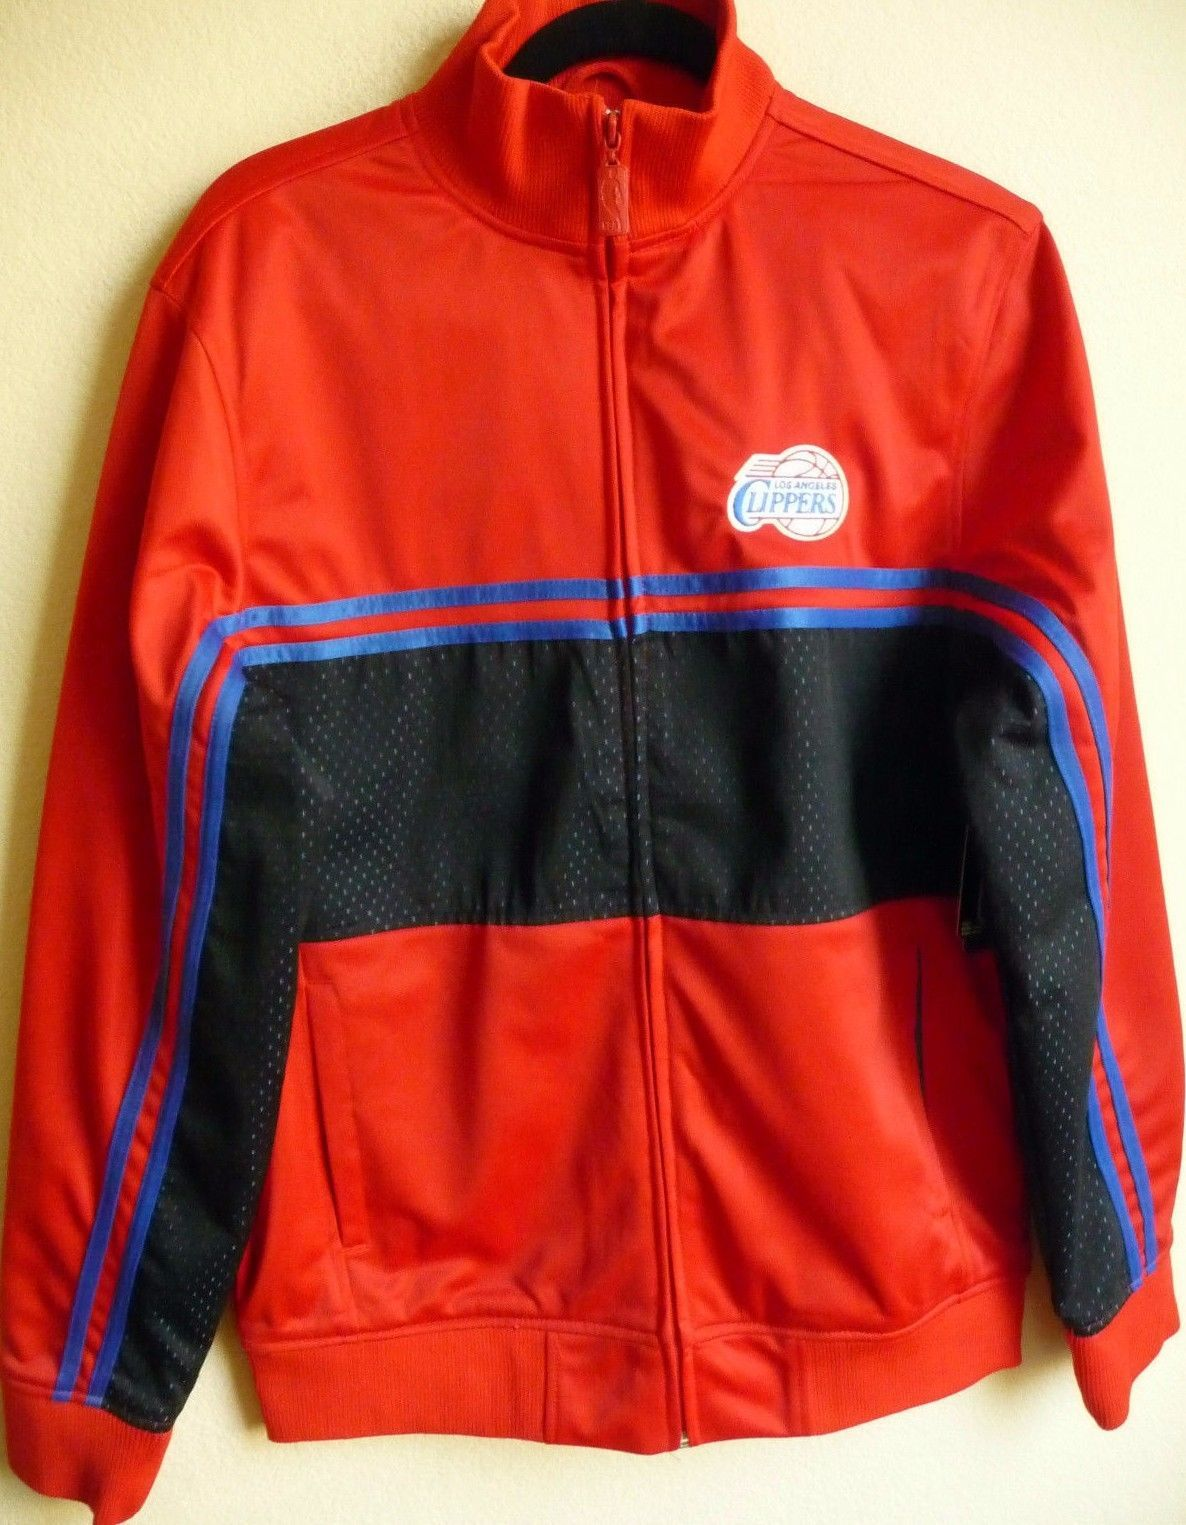 NBA Los Angeles Clippers Basketball Full-Zip Jacket Medium NEW